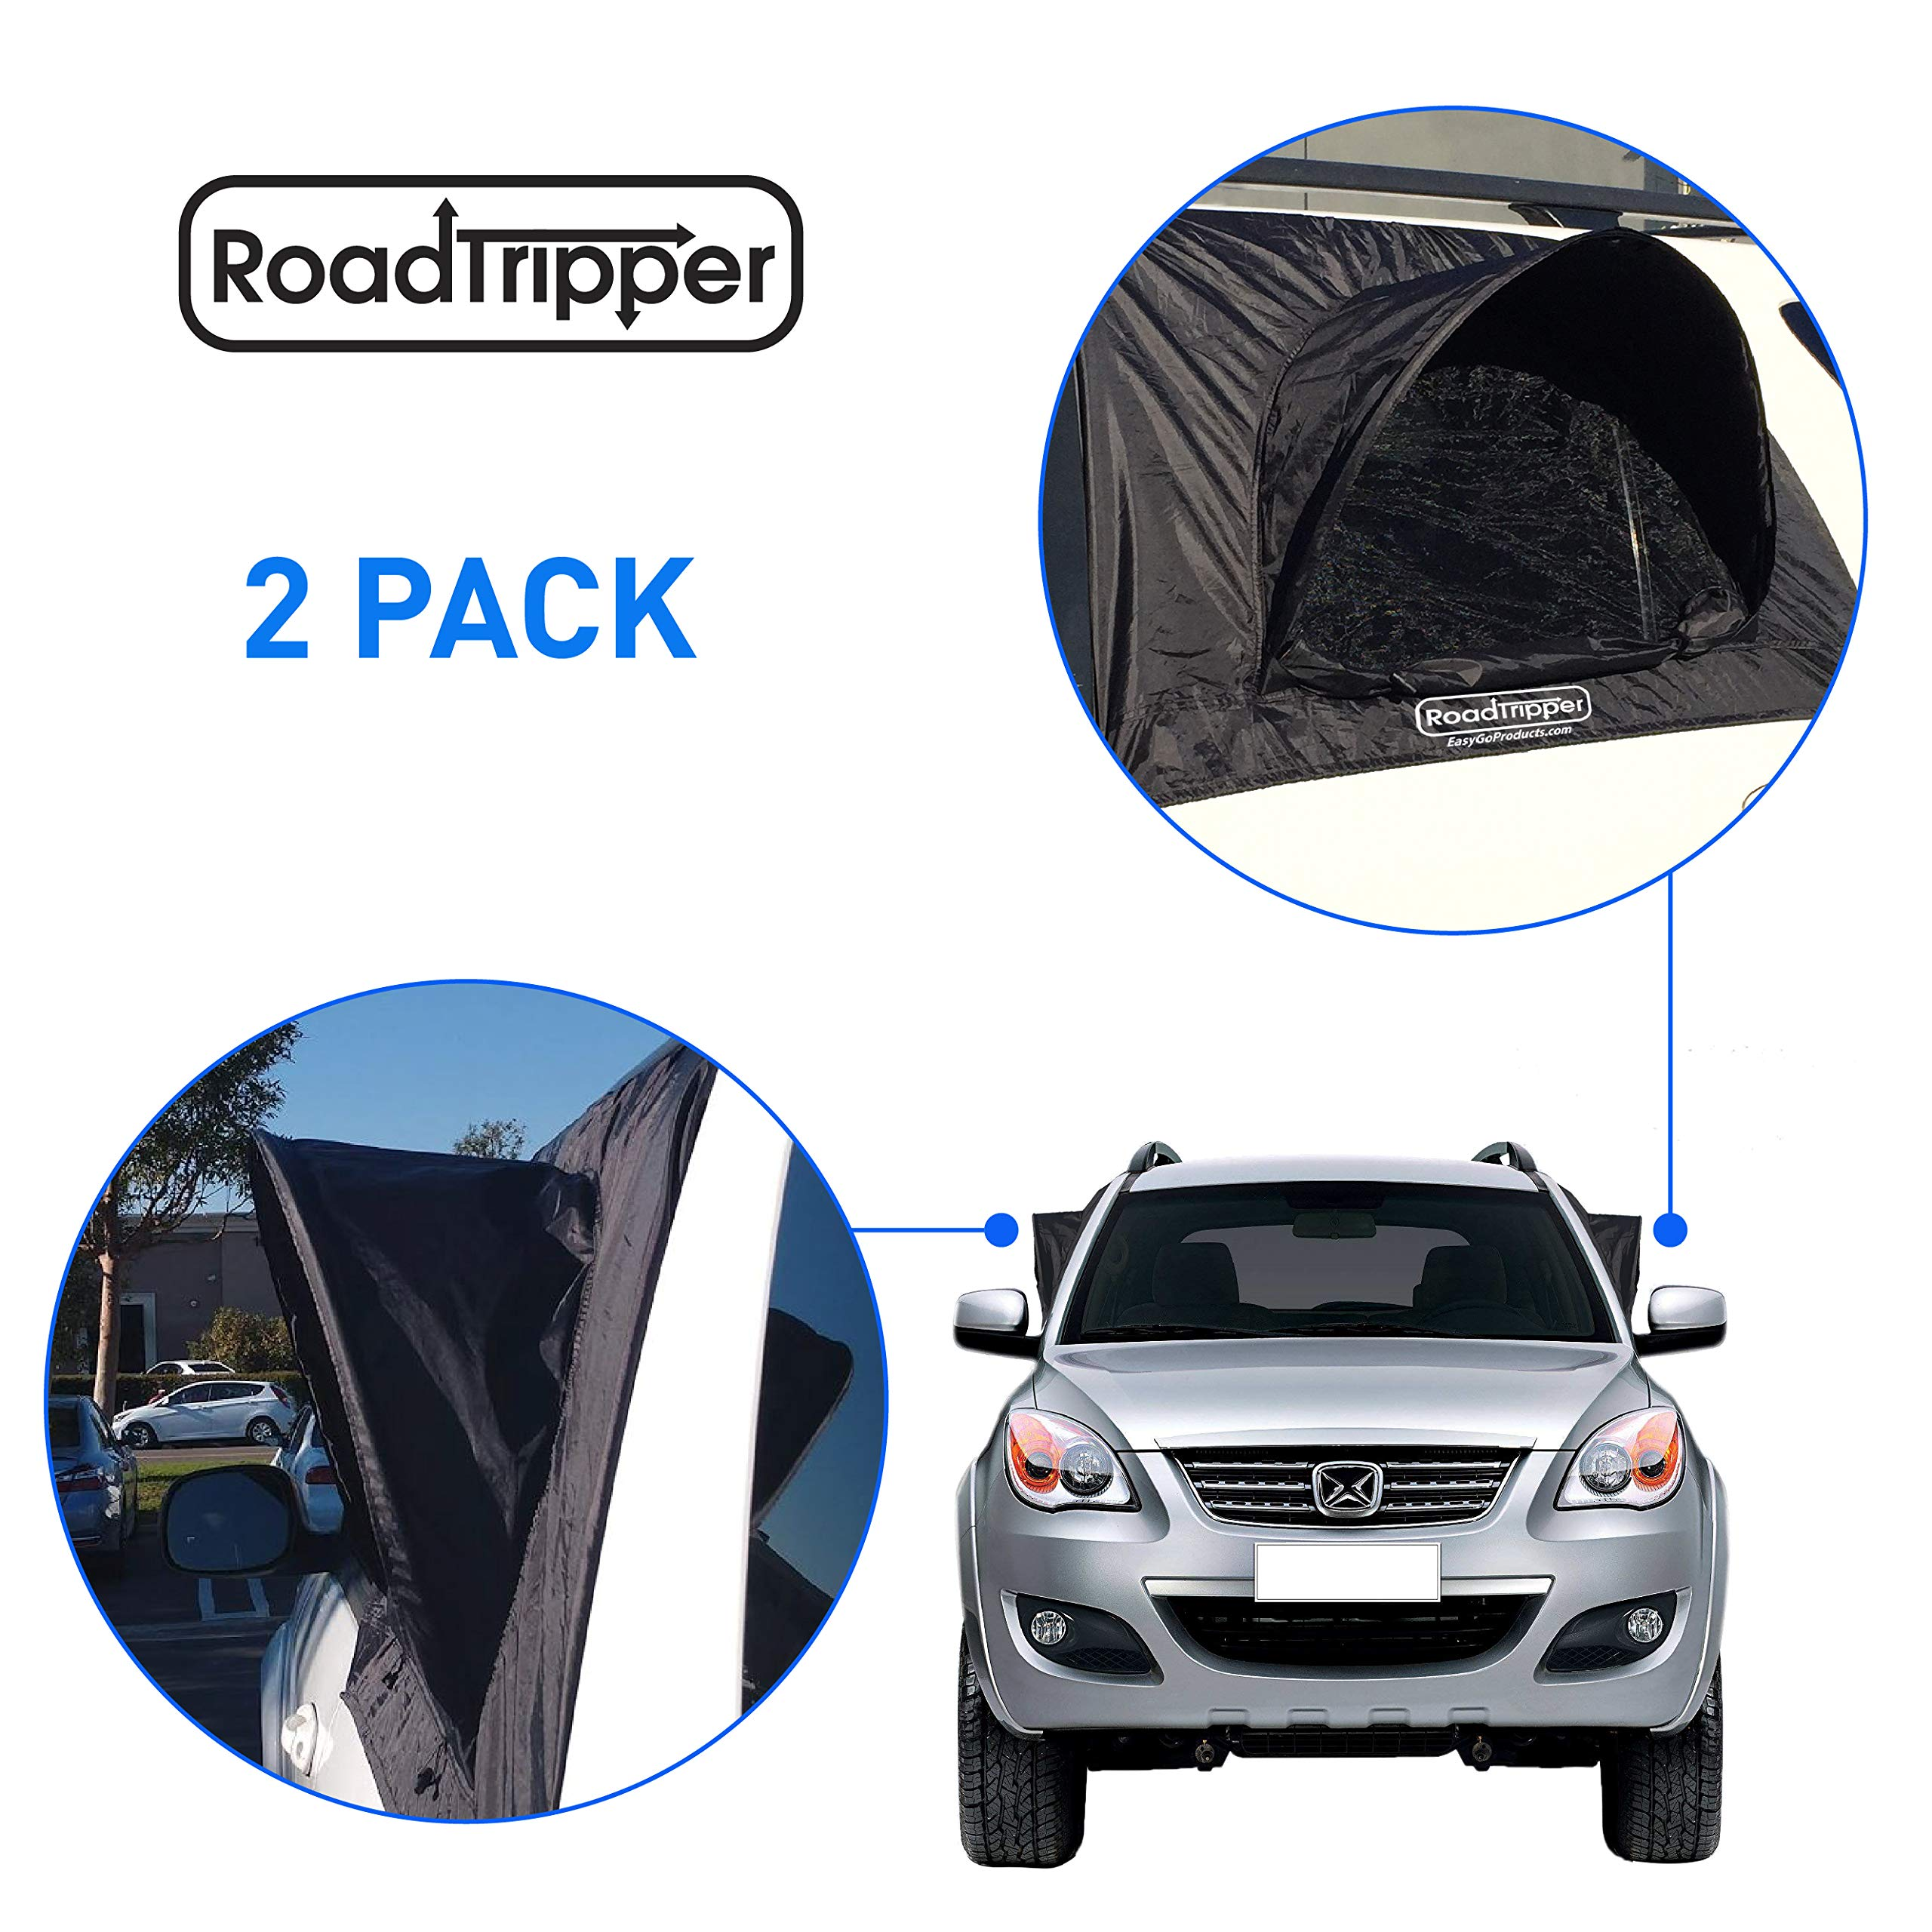 EasyGoProducts EGP-Auto-003-D RoadTripper -SUV Tent - Works as Vent, Bug Guard and Sun Screen Canopy-Car Camping Accessory (2 Packs) by EasyGoProducts